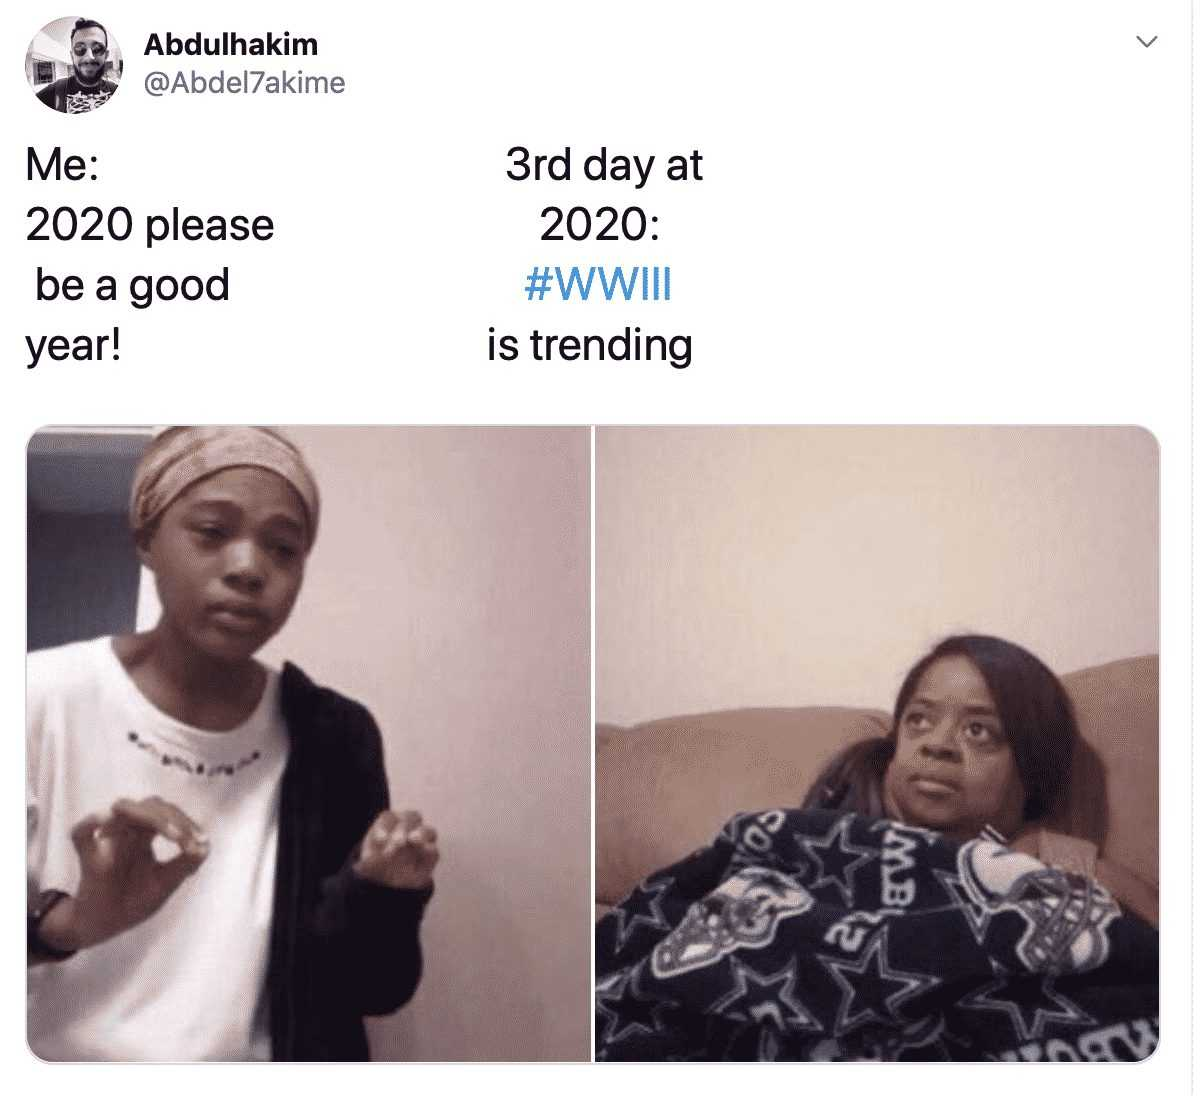 2020 memes - wwiii trending on 3rd day of 2020